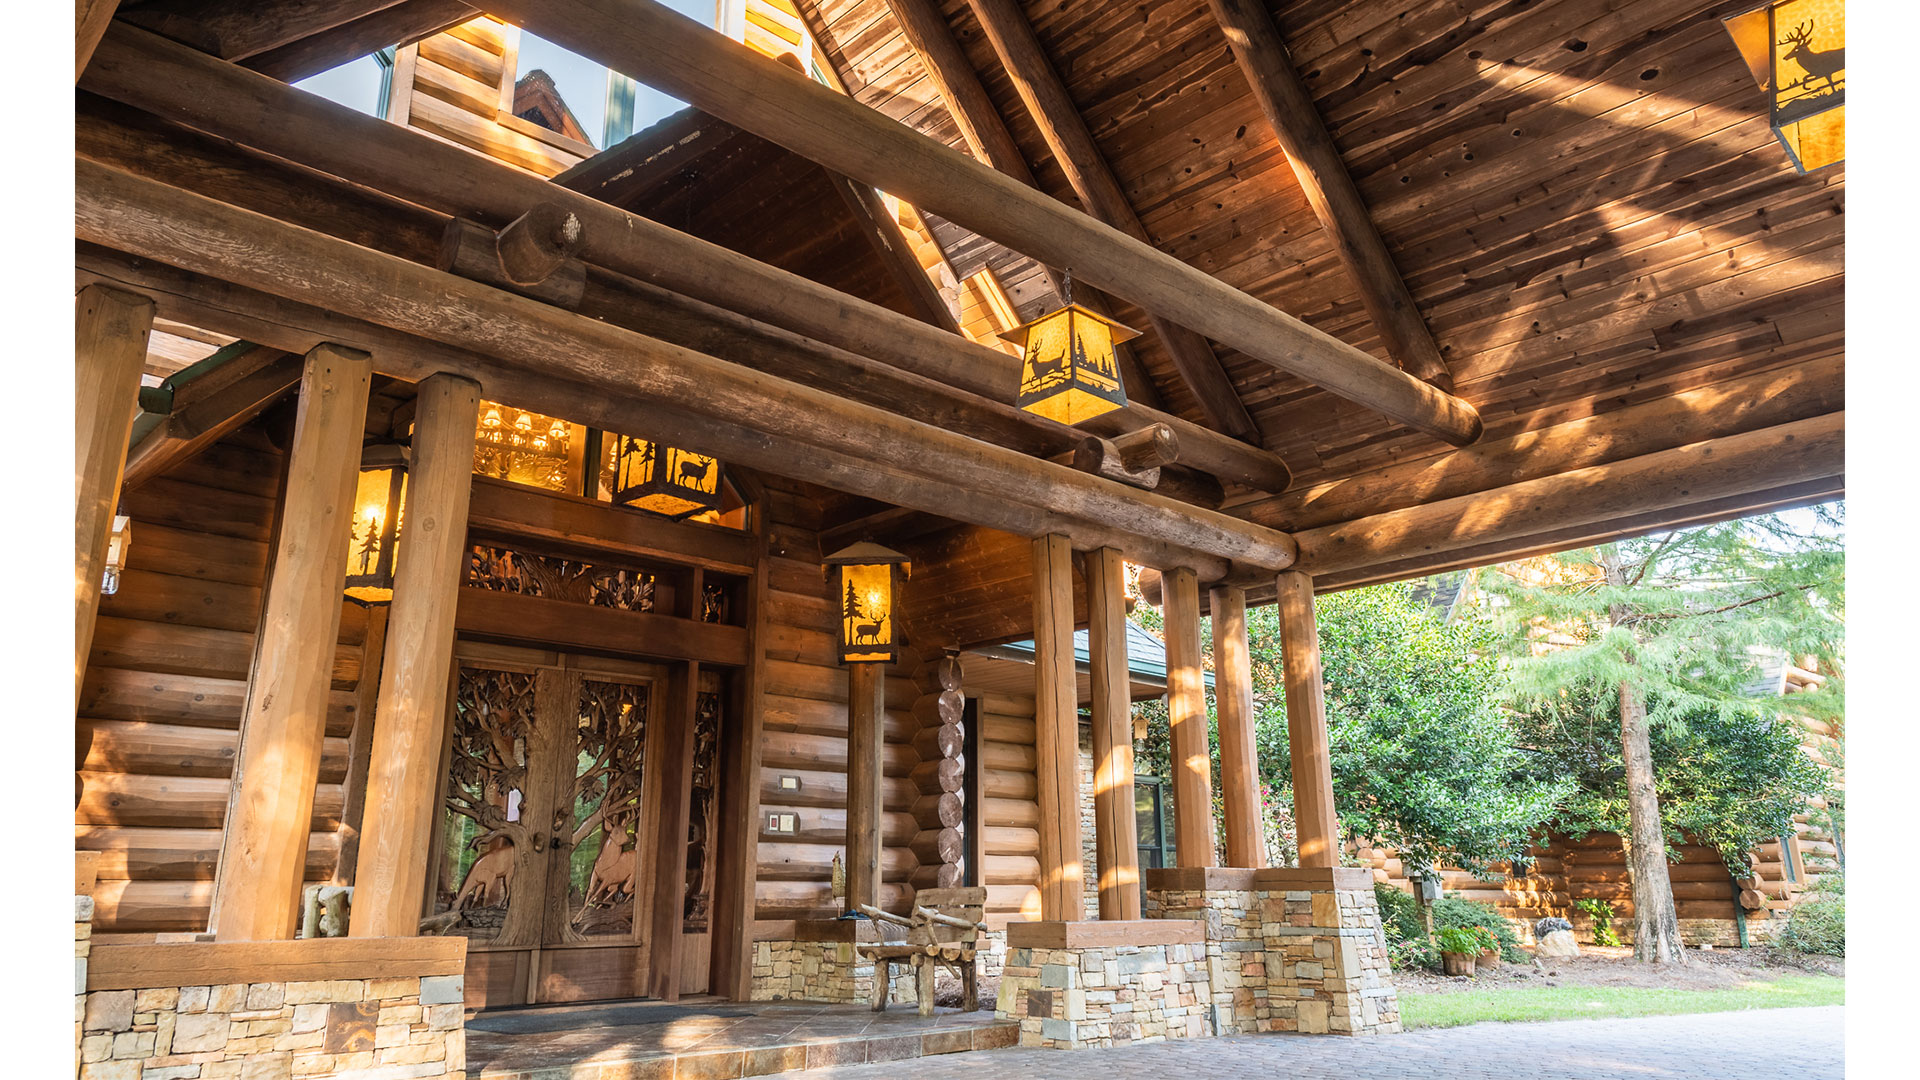 Timber Creek Lodge Florida Entrance